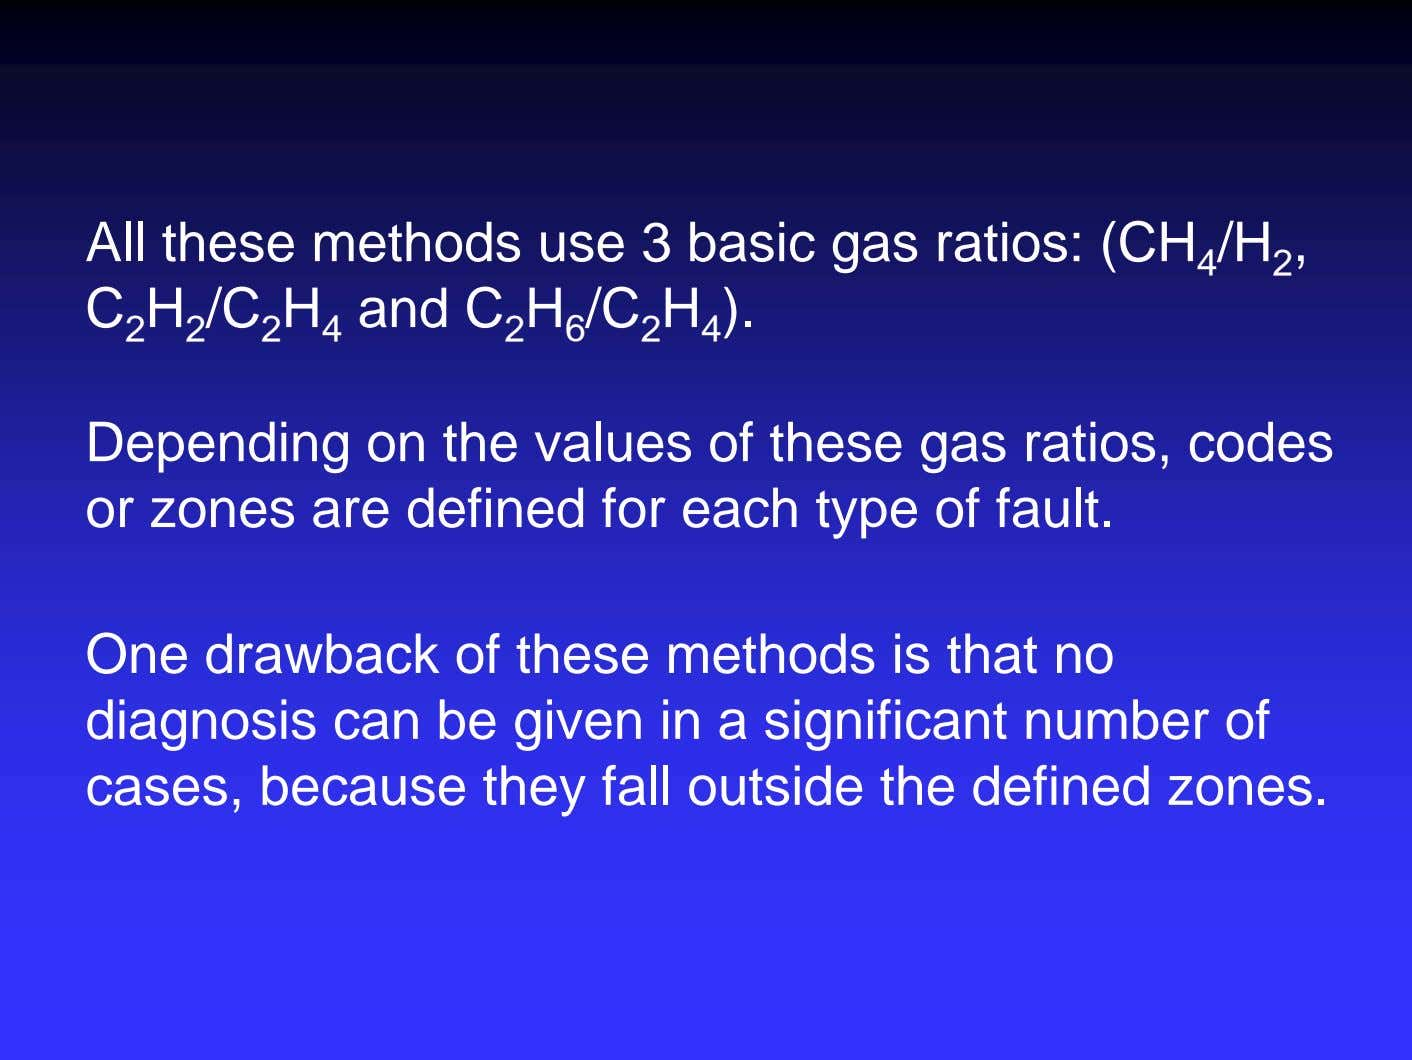 All these methods use 3 basic gas ratios: (CH 4 /H 2 , C 2